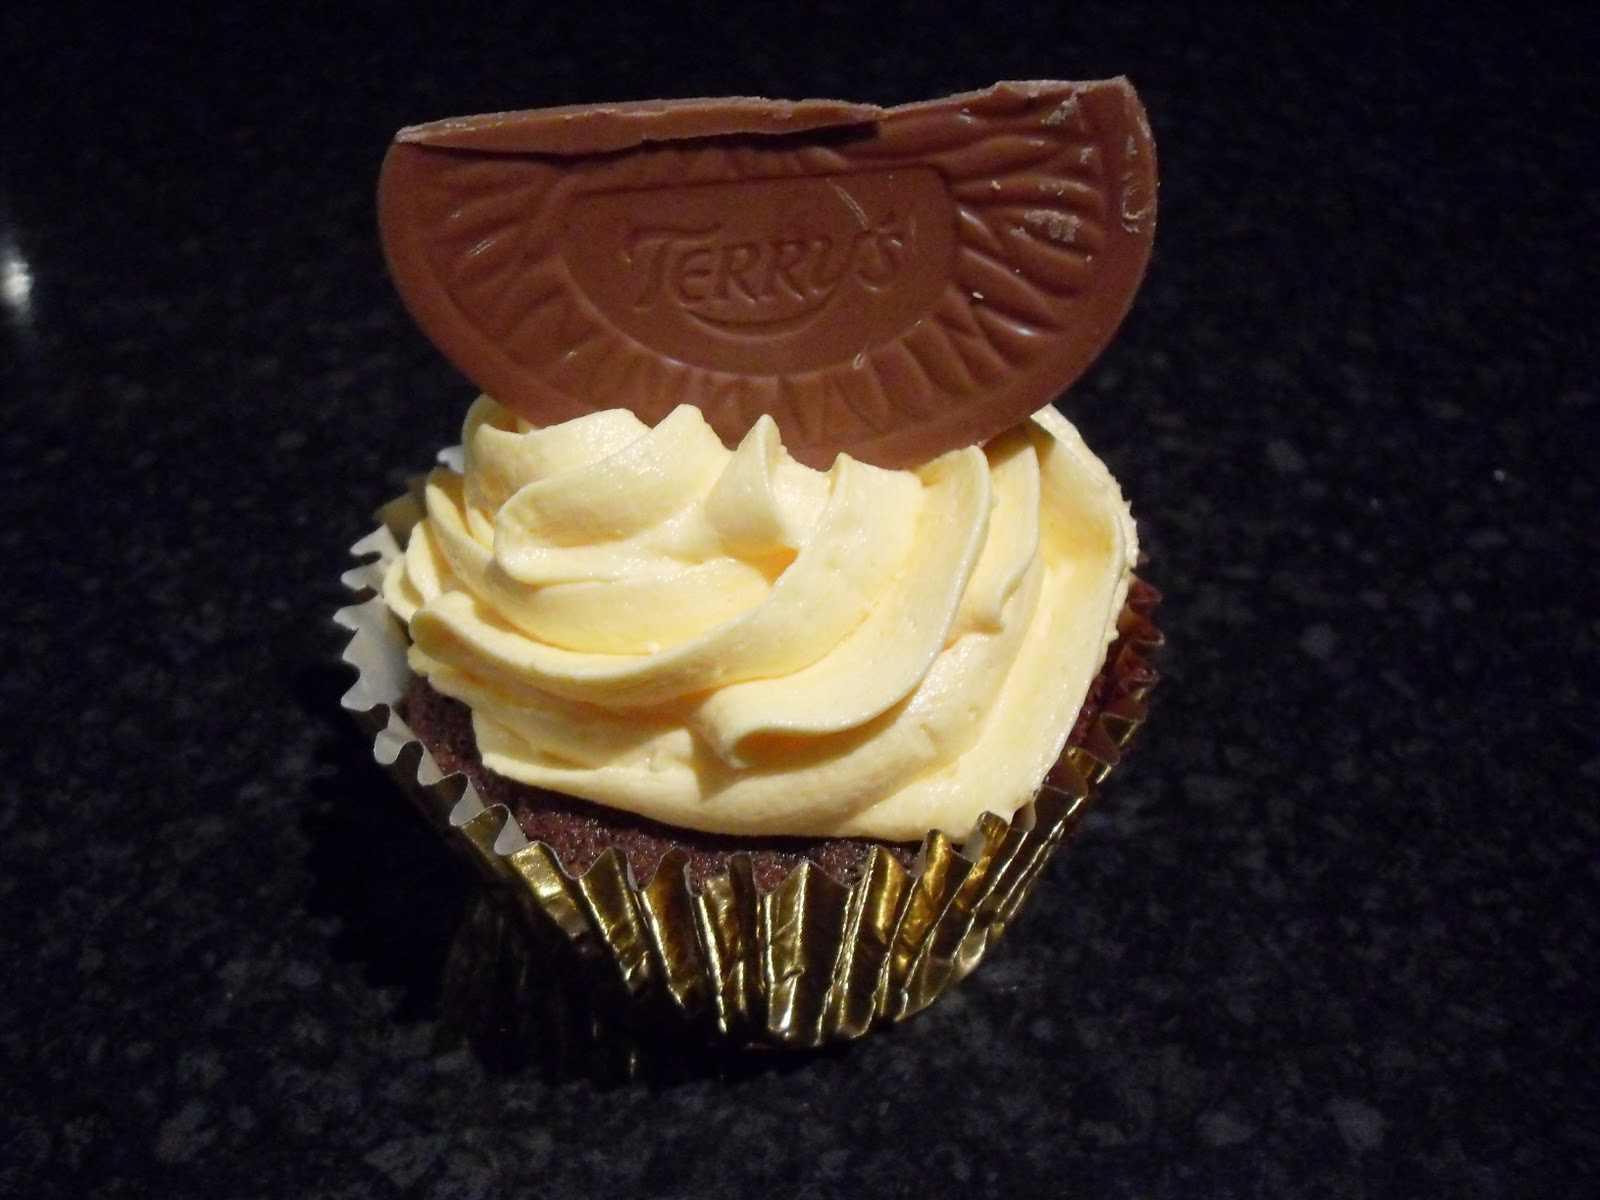 ... in Furness and the Lake District, Cumbria: Chocolate Orange Cupcakes